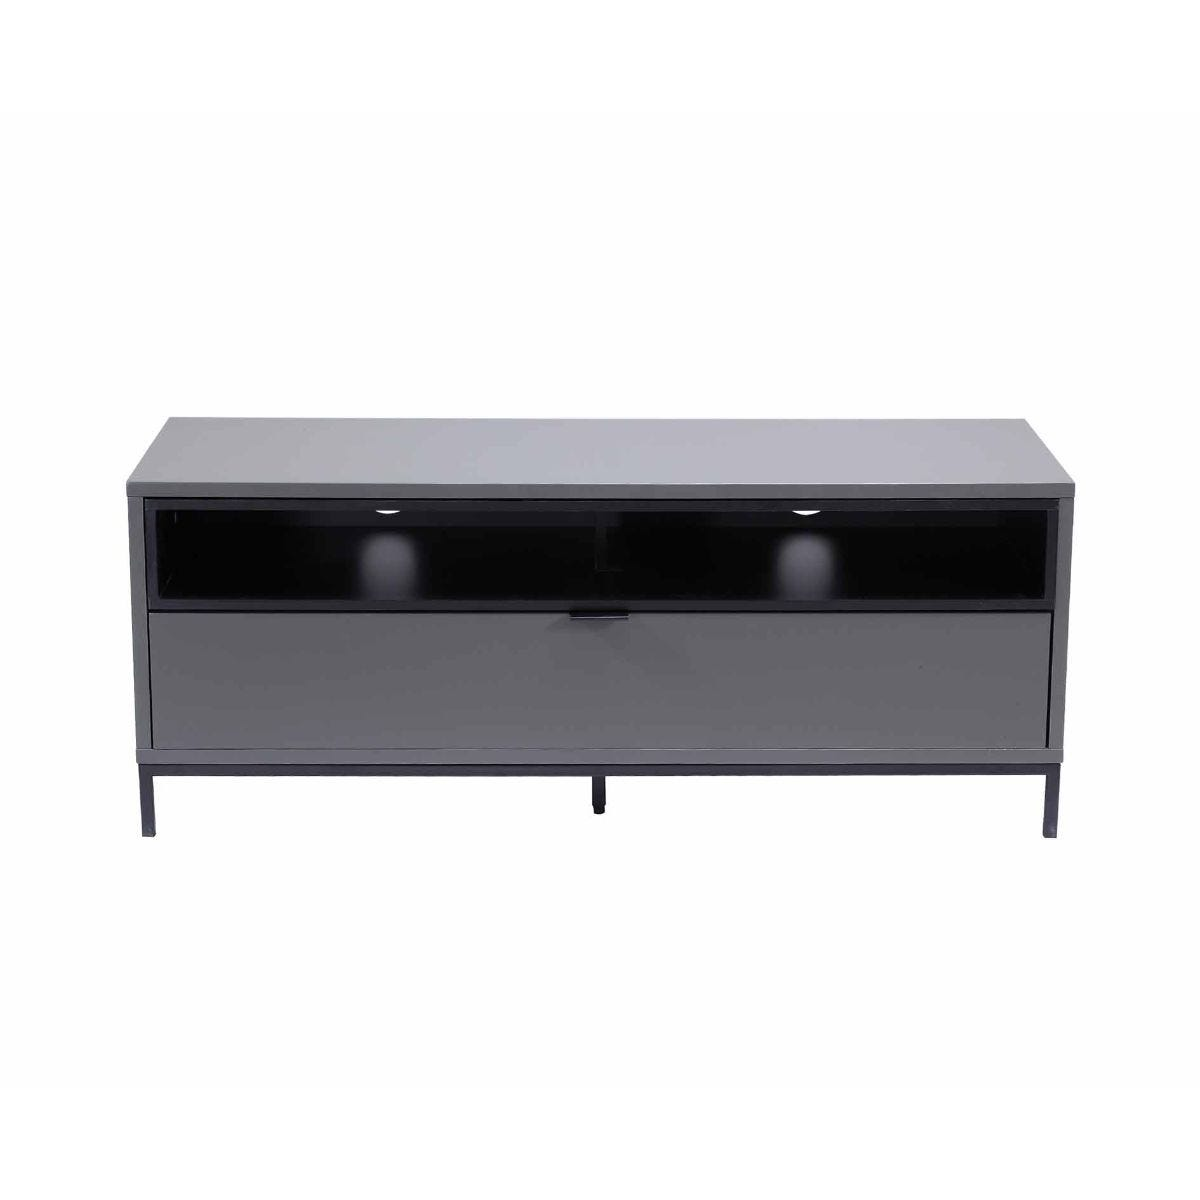 Alphason Chaplin 1135 TV Cabinet Black, Black